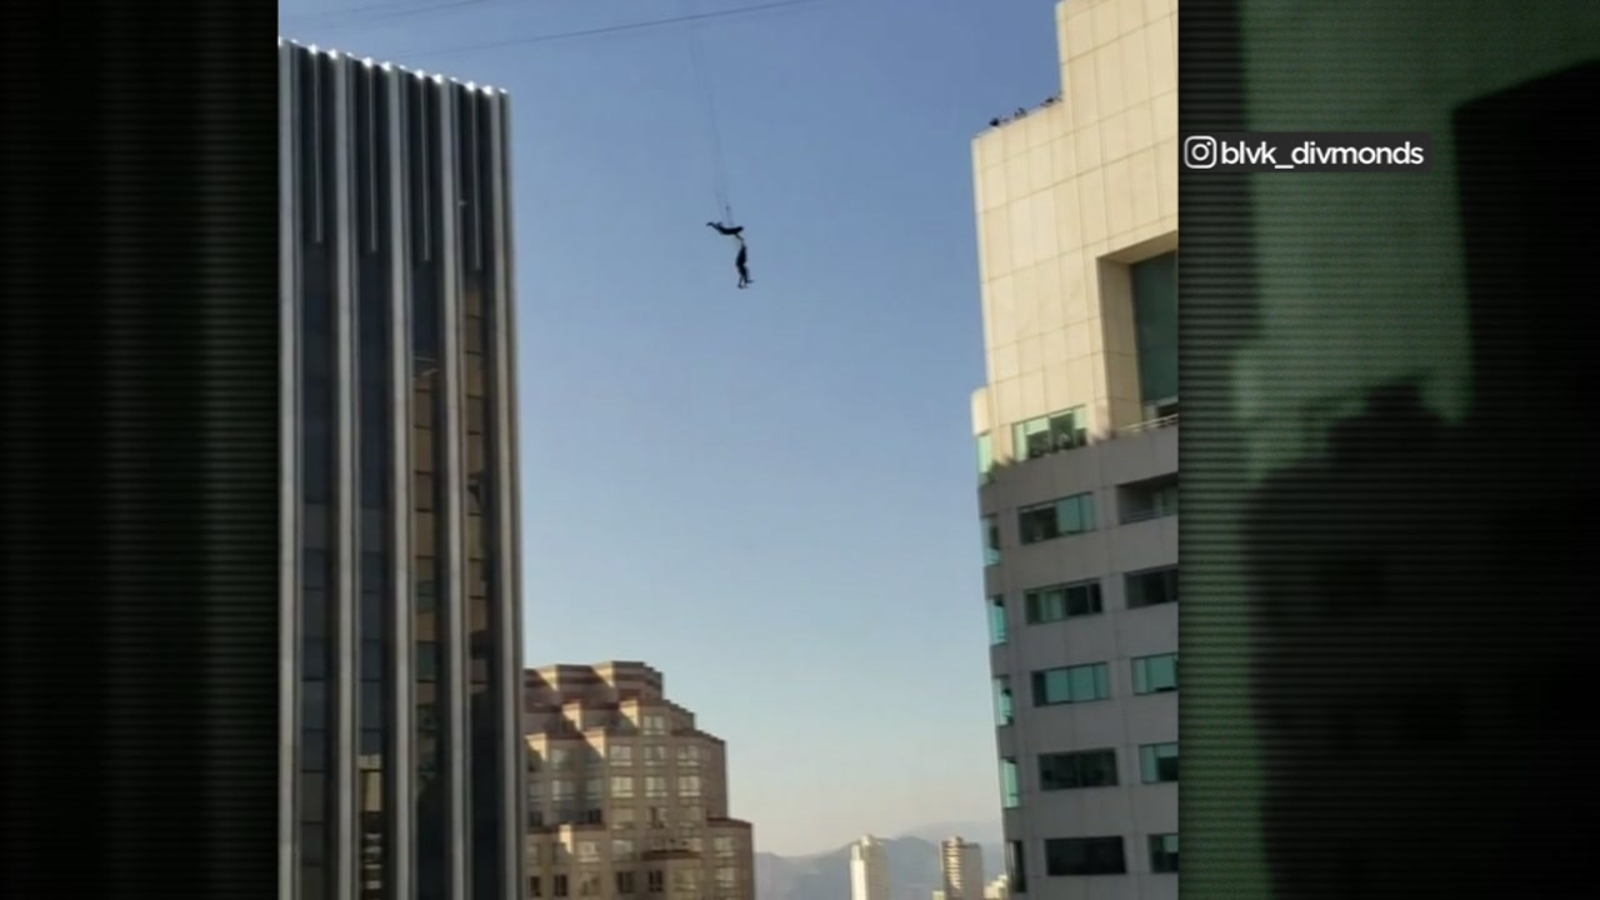 Helicopters, loud sound effects, perhaps celebrity sightings planned for 'Matrix' set in San Francisco